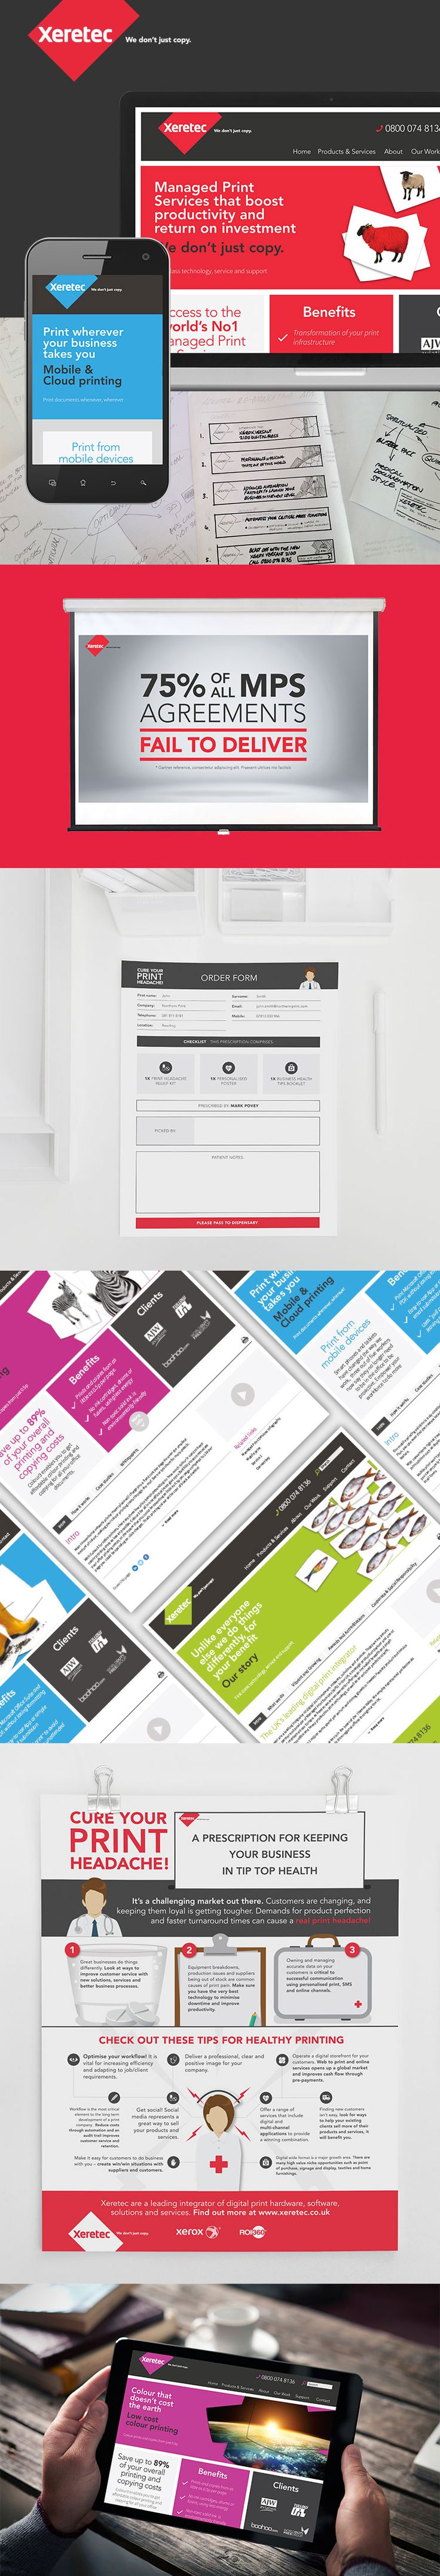 Xeretec - Branding -  Design - Corporate Website - Poster - Presentation - Form - Screen Mockup